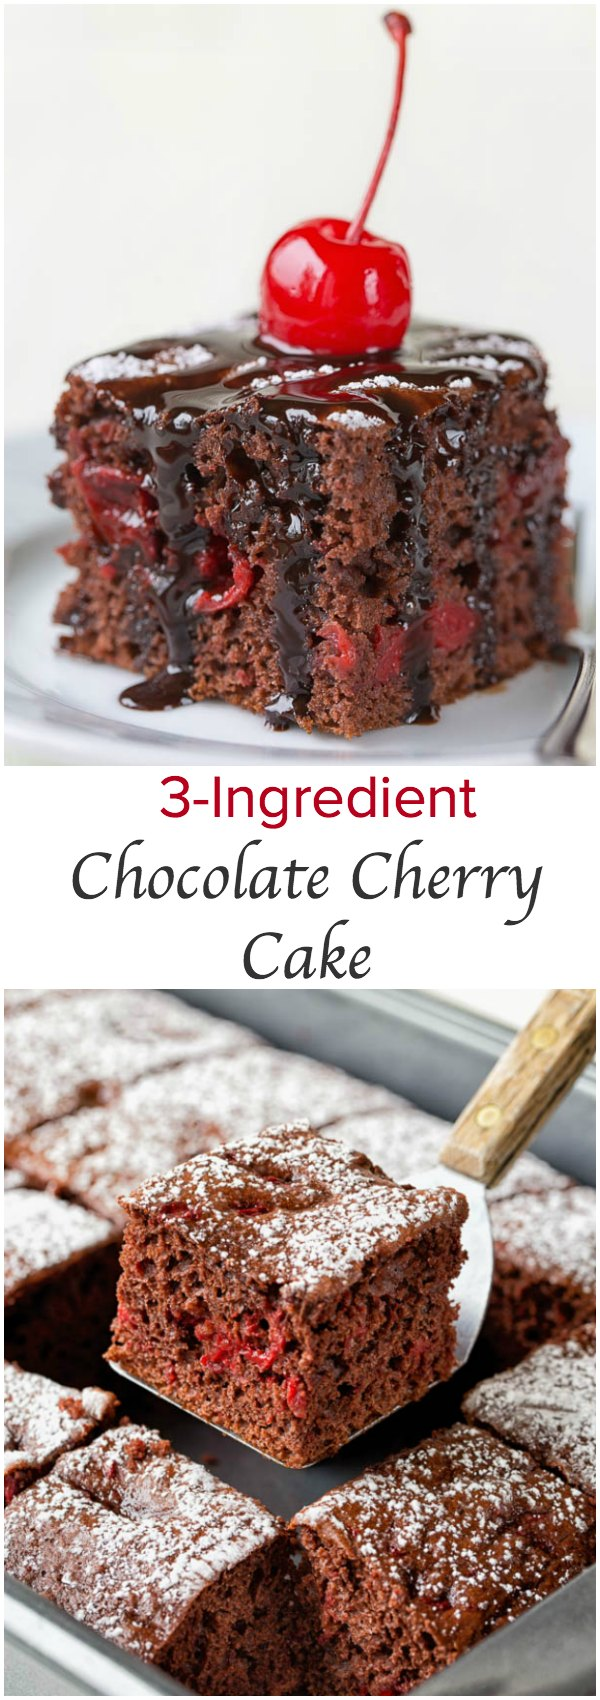 3-Ingredient Chocolate Cherry Cake ~Sweet & Savory by Shinee